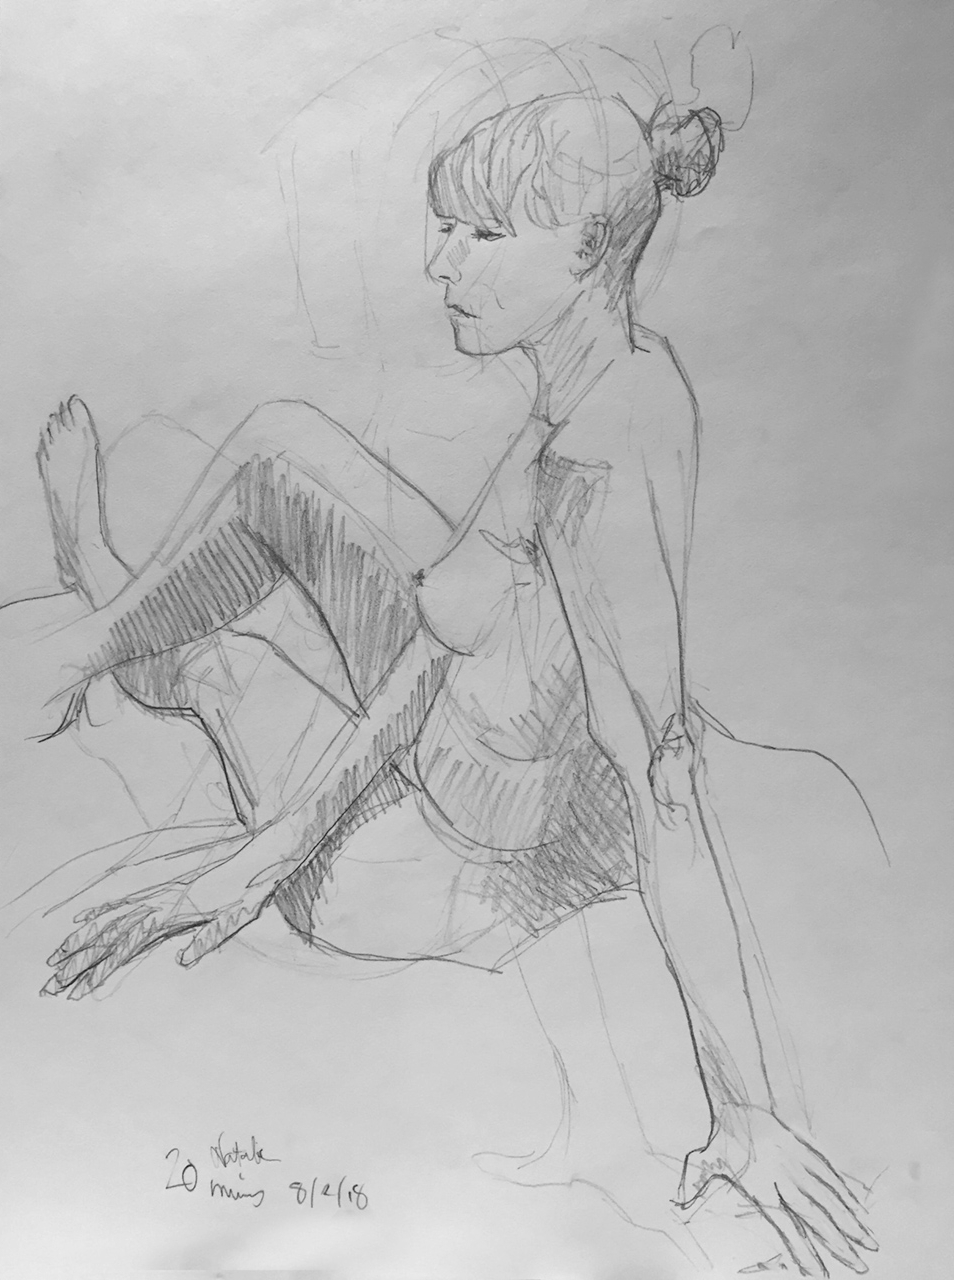 Life Drawing Session Sketch 2, 8/2/18